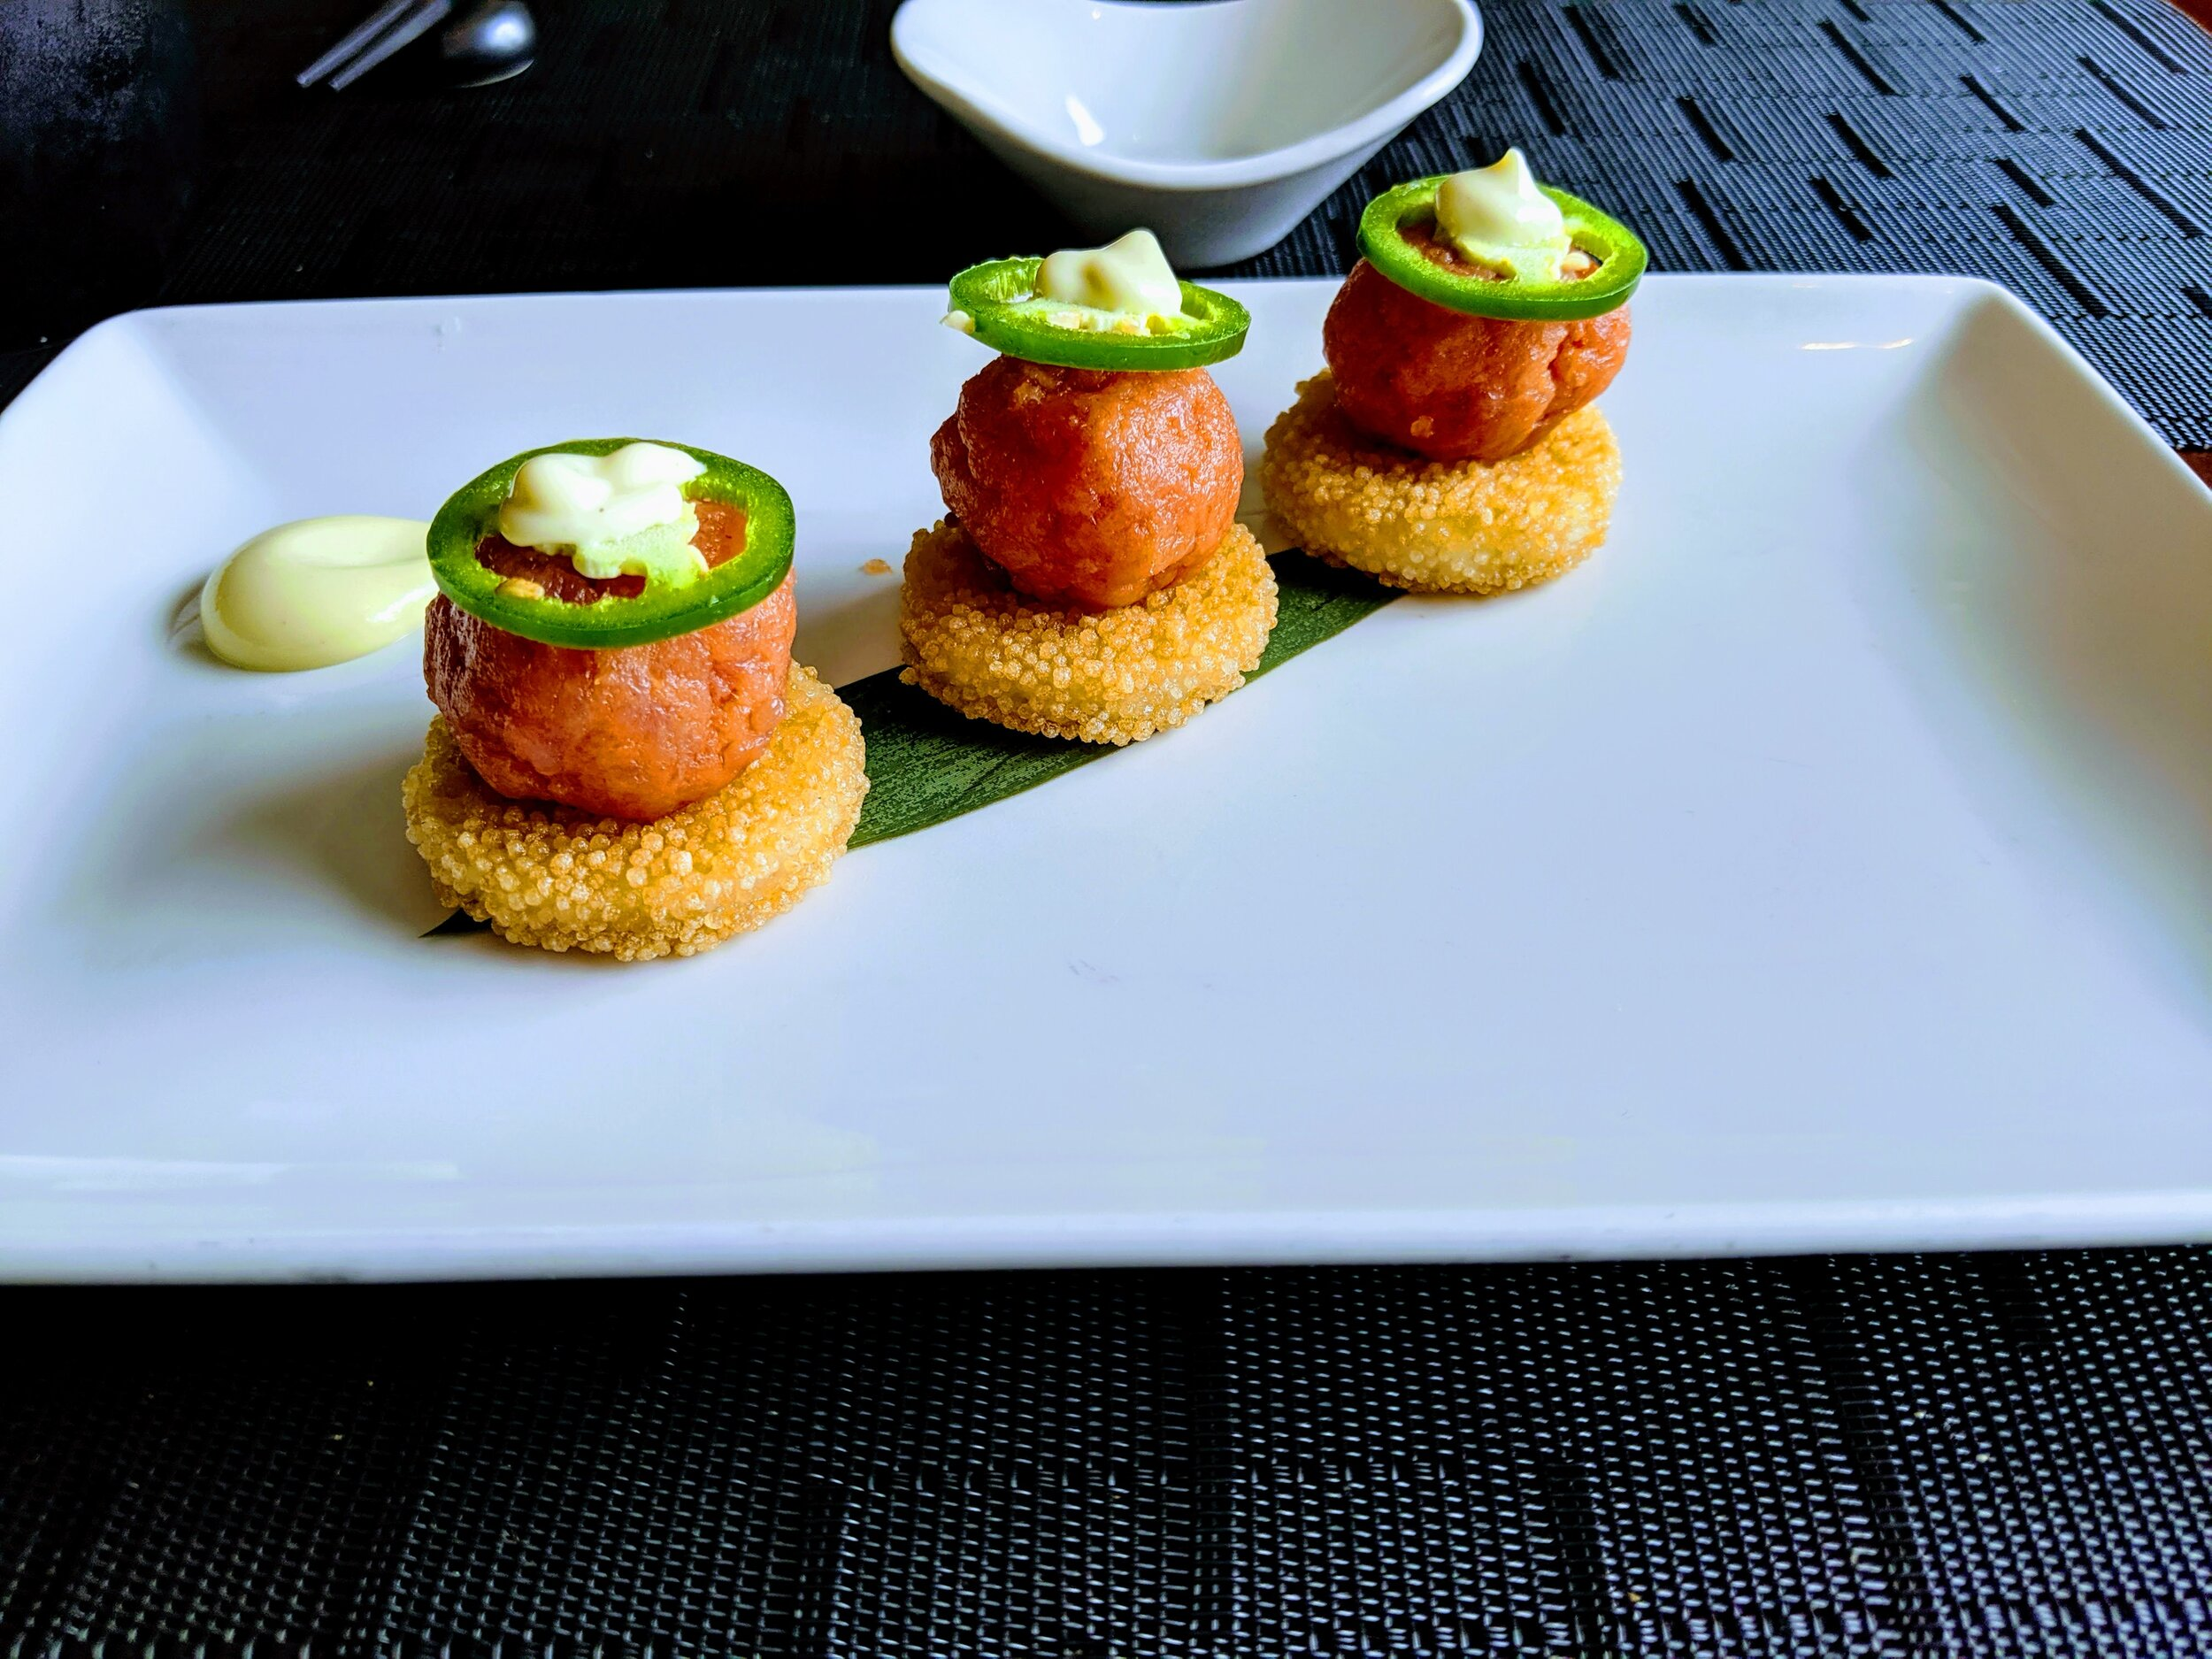 Recommended: Spicy tuna appetizer at Sushi on 5.